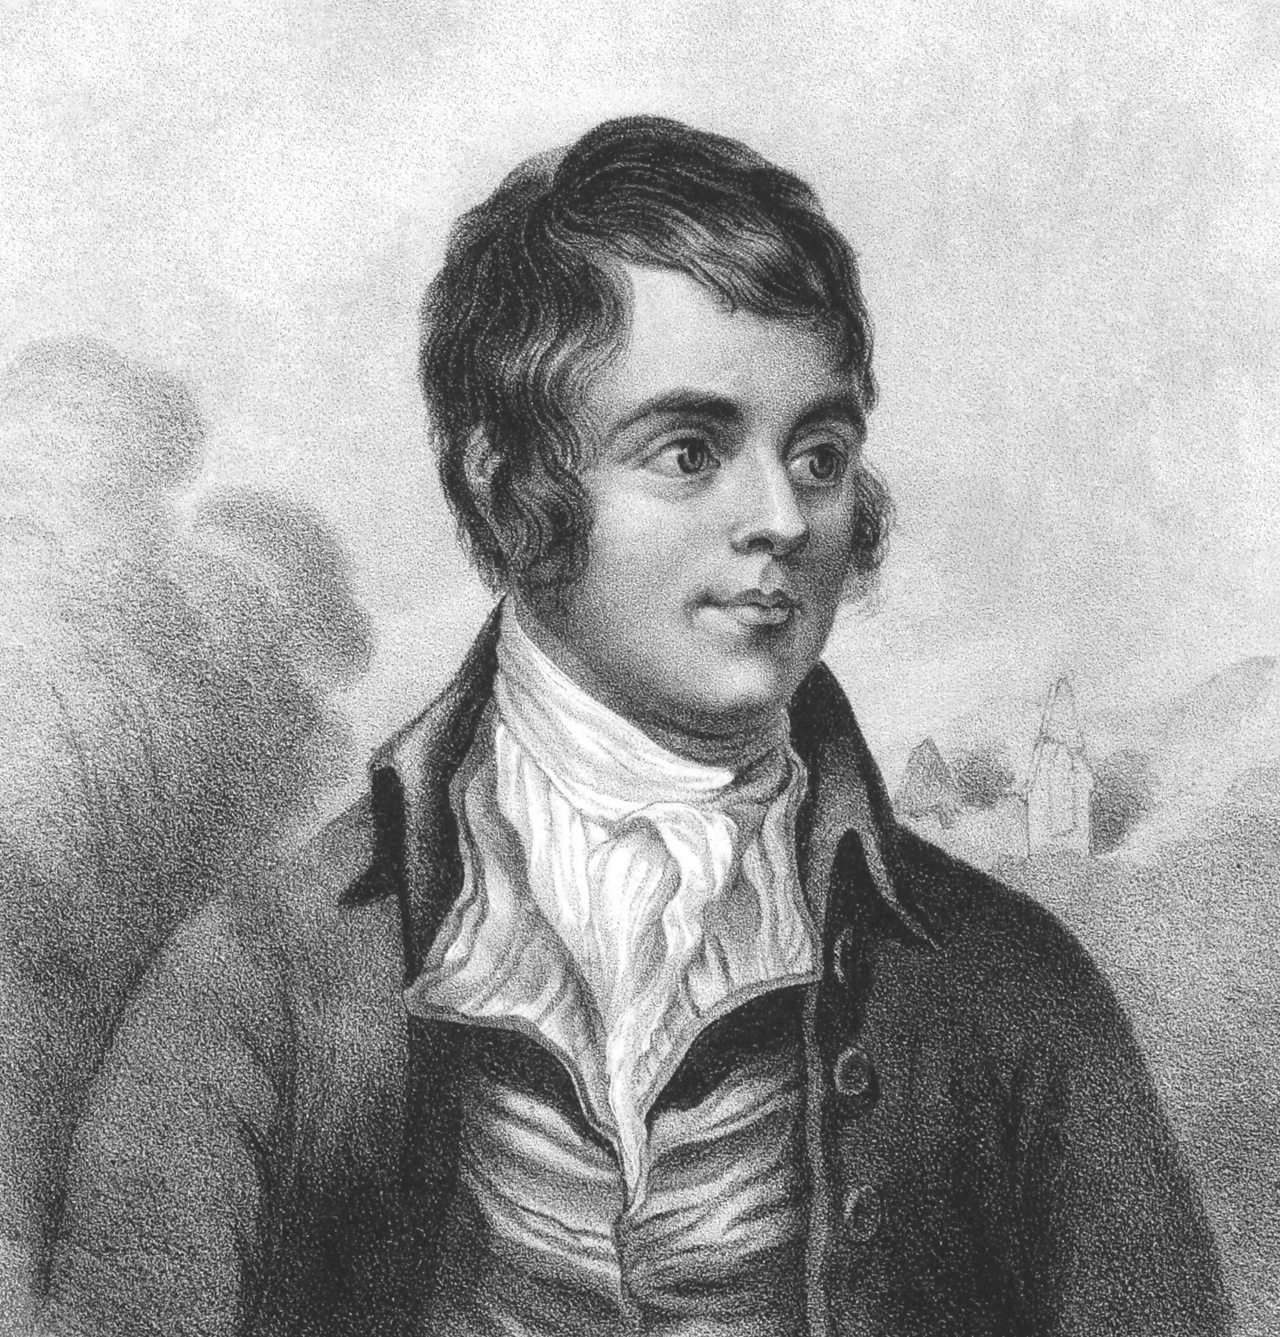 A 19th Century engraving of Robert Burns.